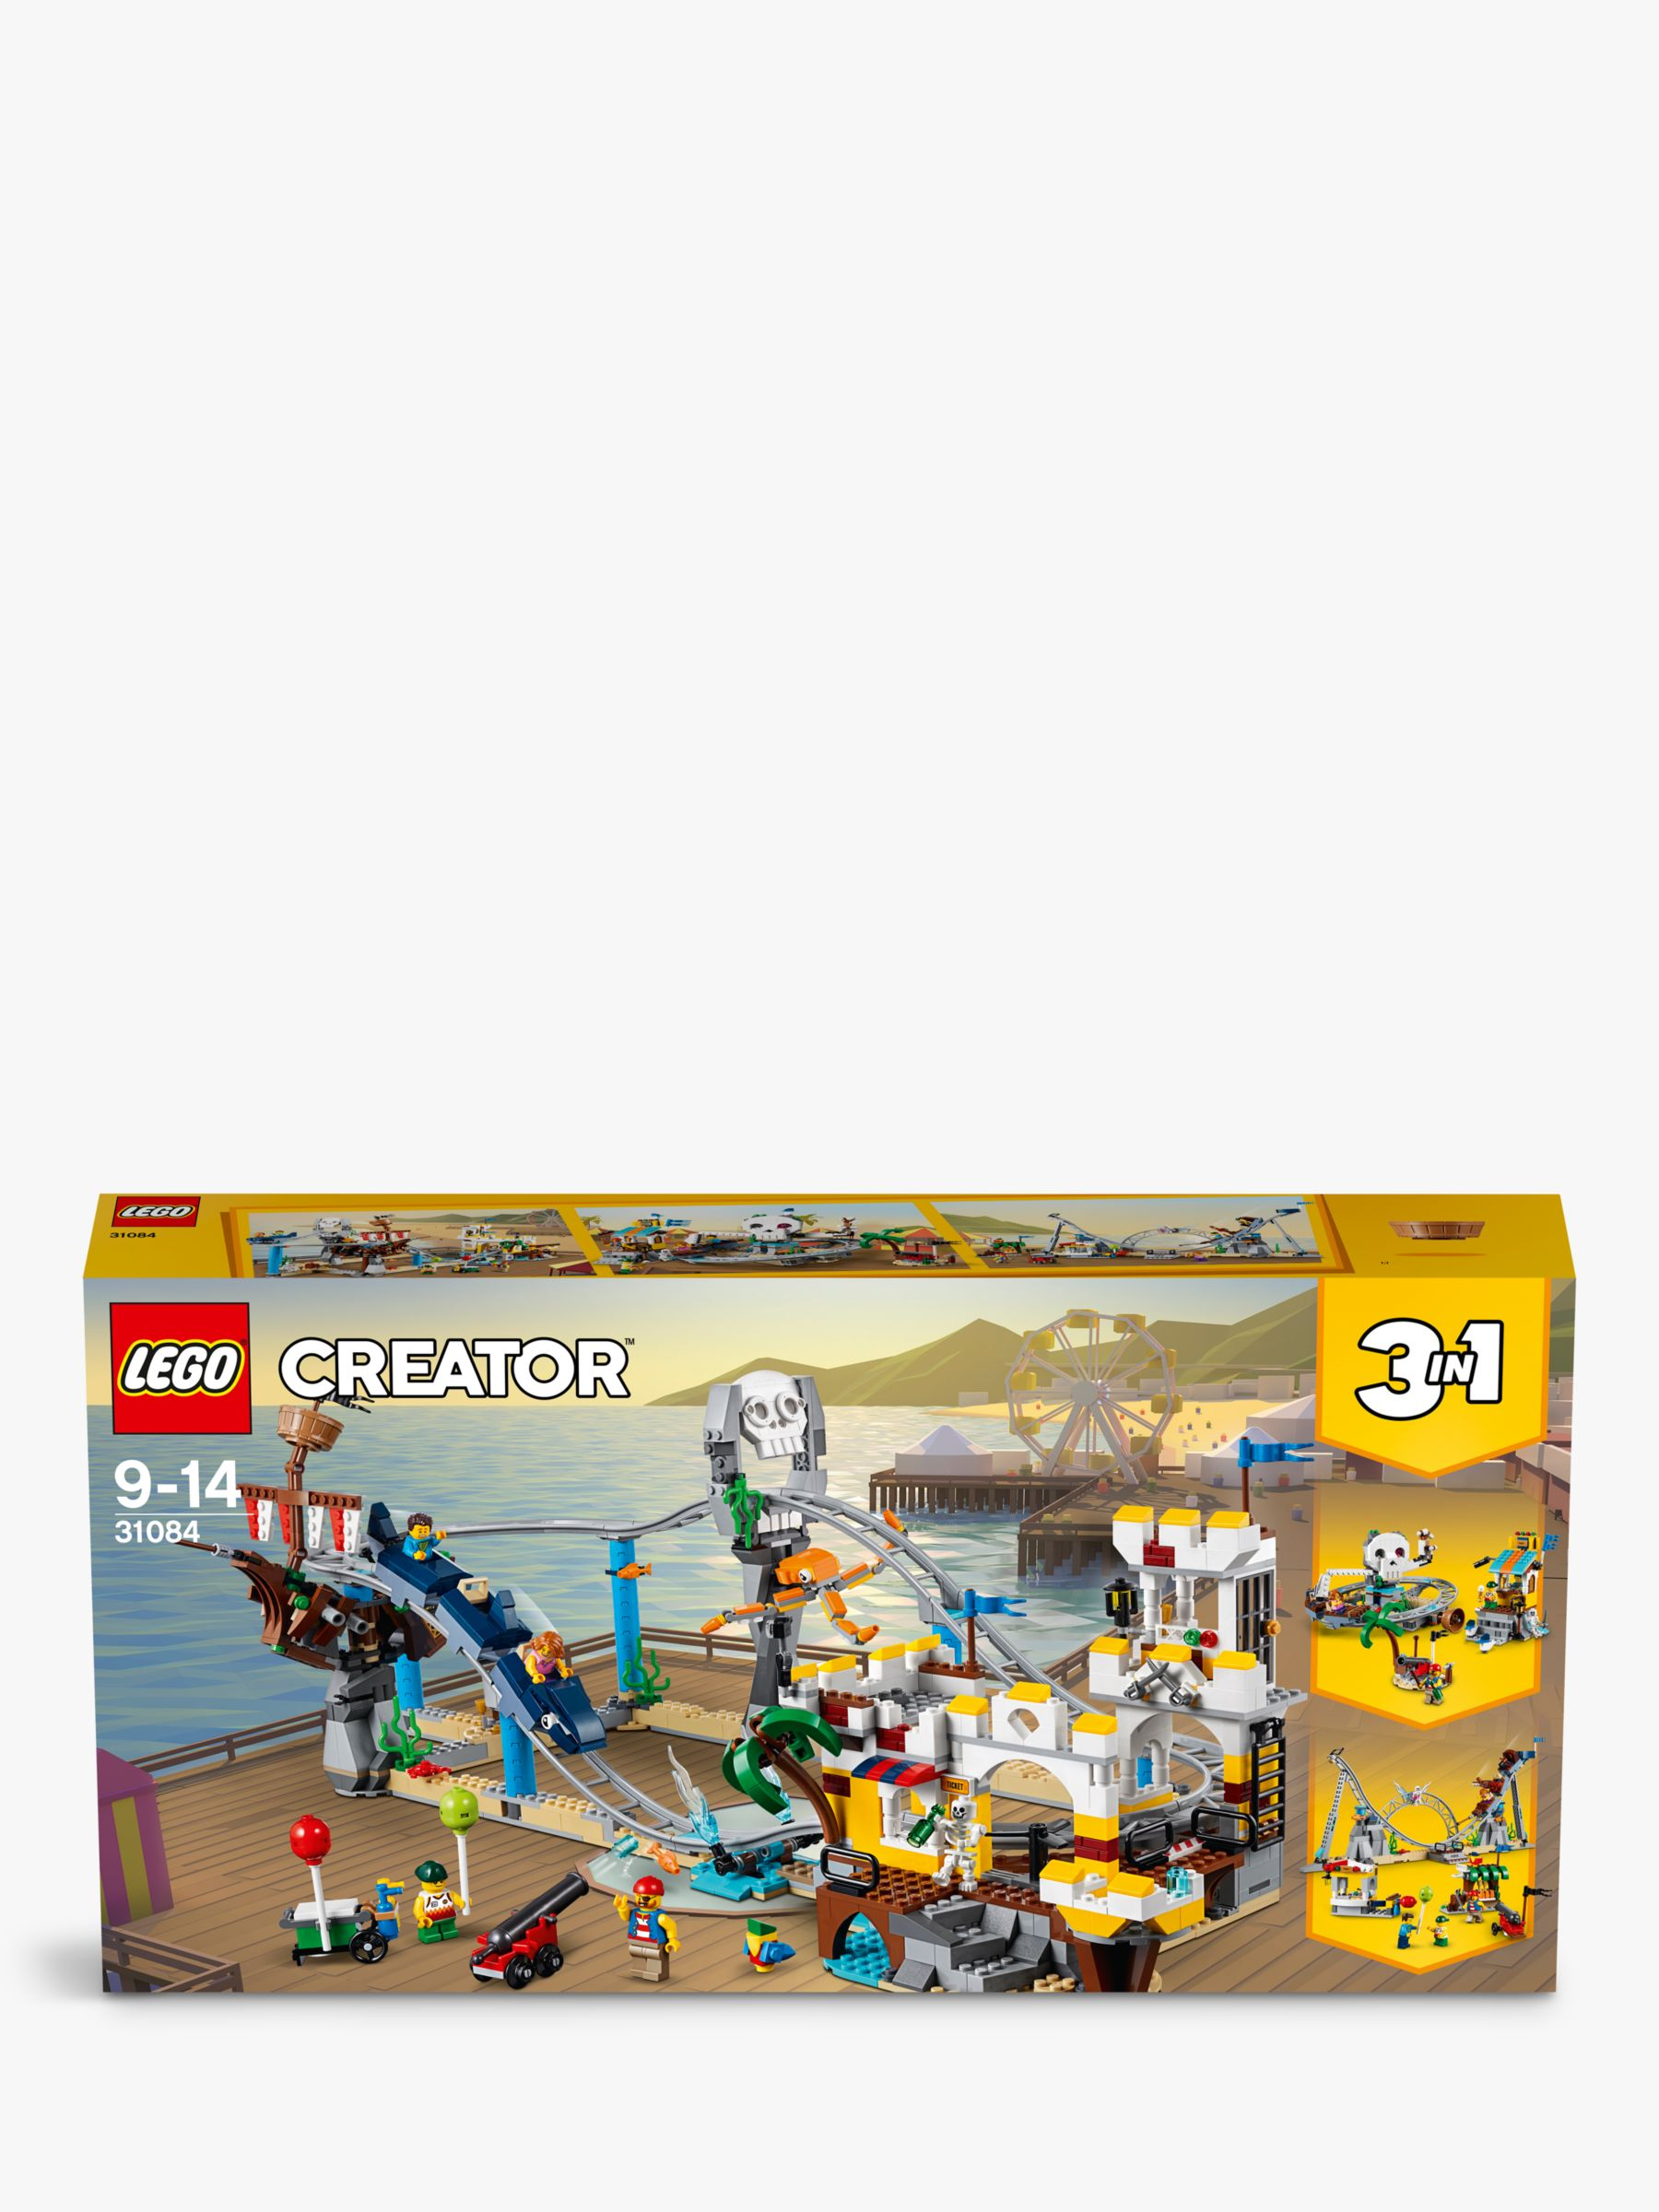 LEGO Creator 31084 3-in-1 Pirate Roller Coaster at John Lewis & Partners